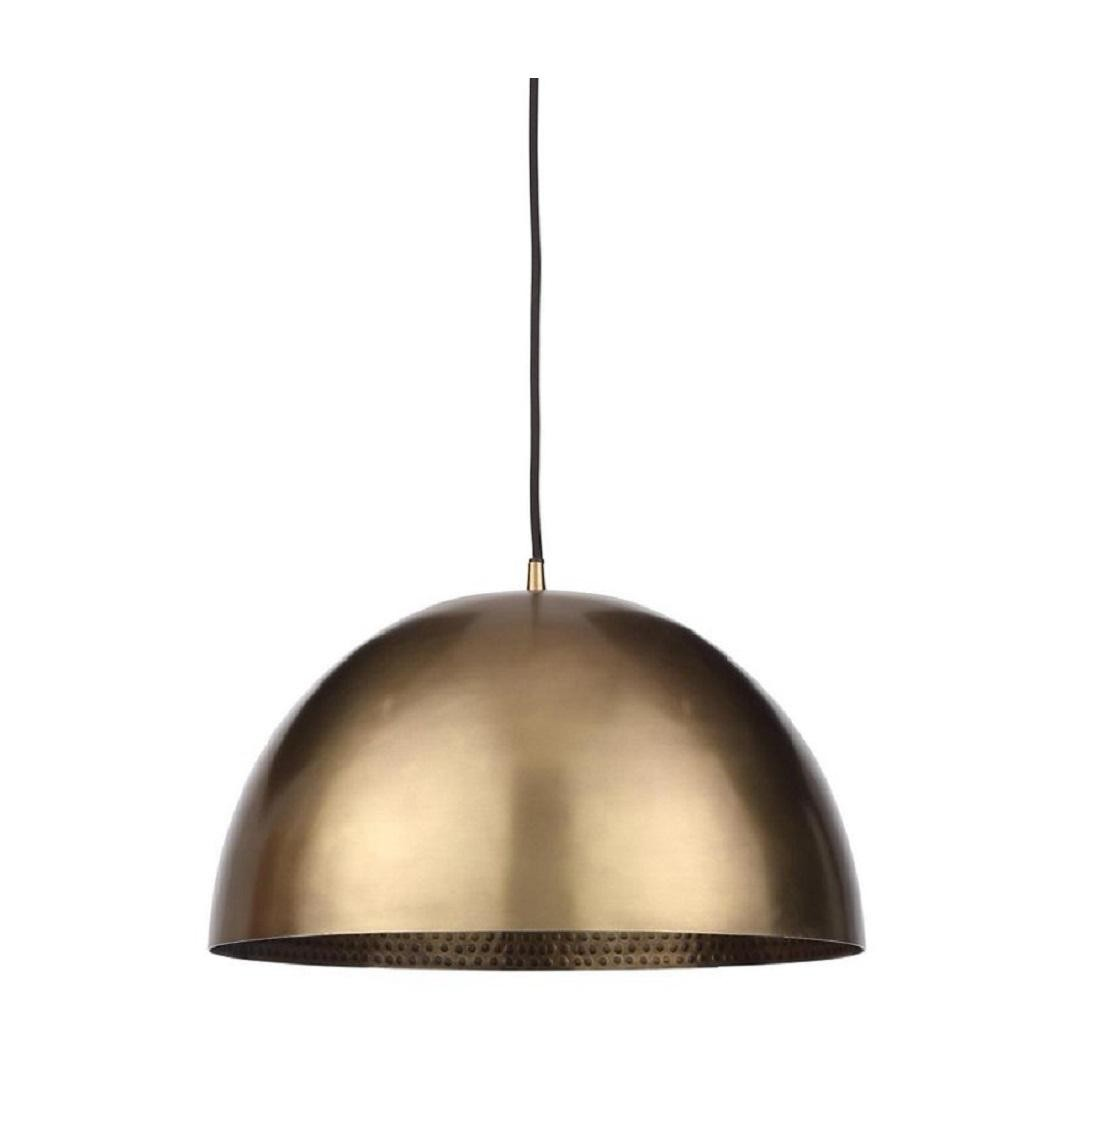 Home%20Collection%20-%20Bronze%20Hammered%20Metal%20'Mason'%20Pendant%20Ceiling%20Light%20C4.jpg